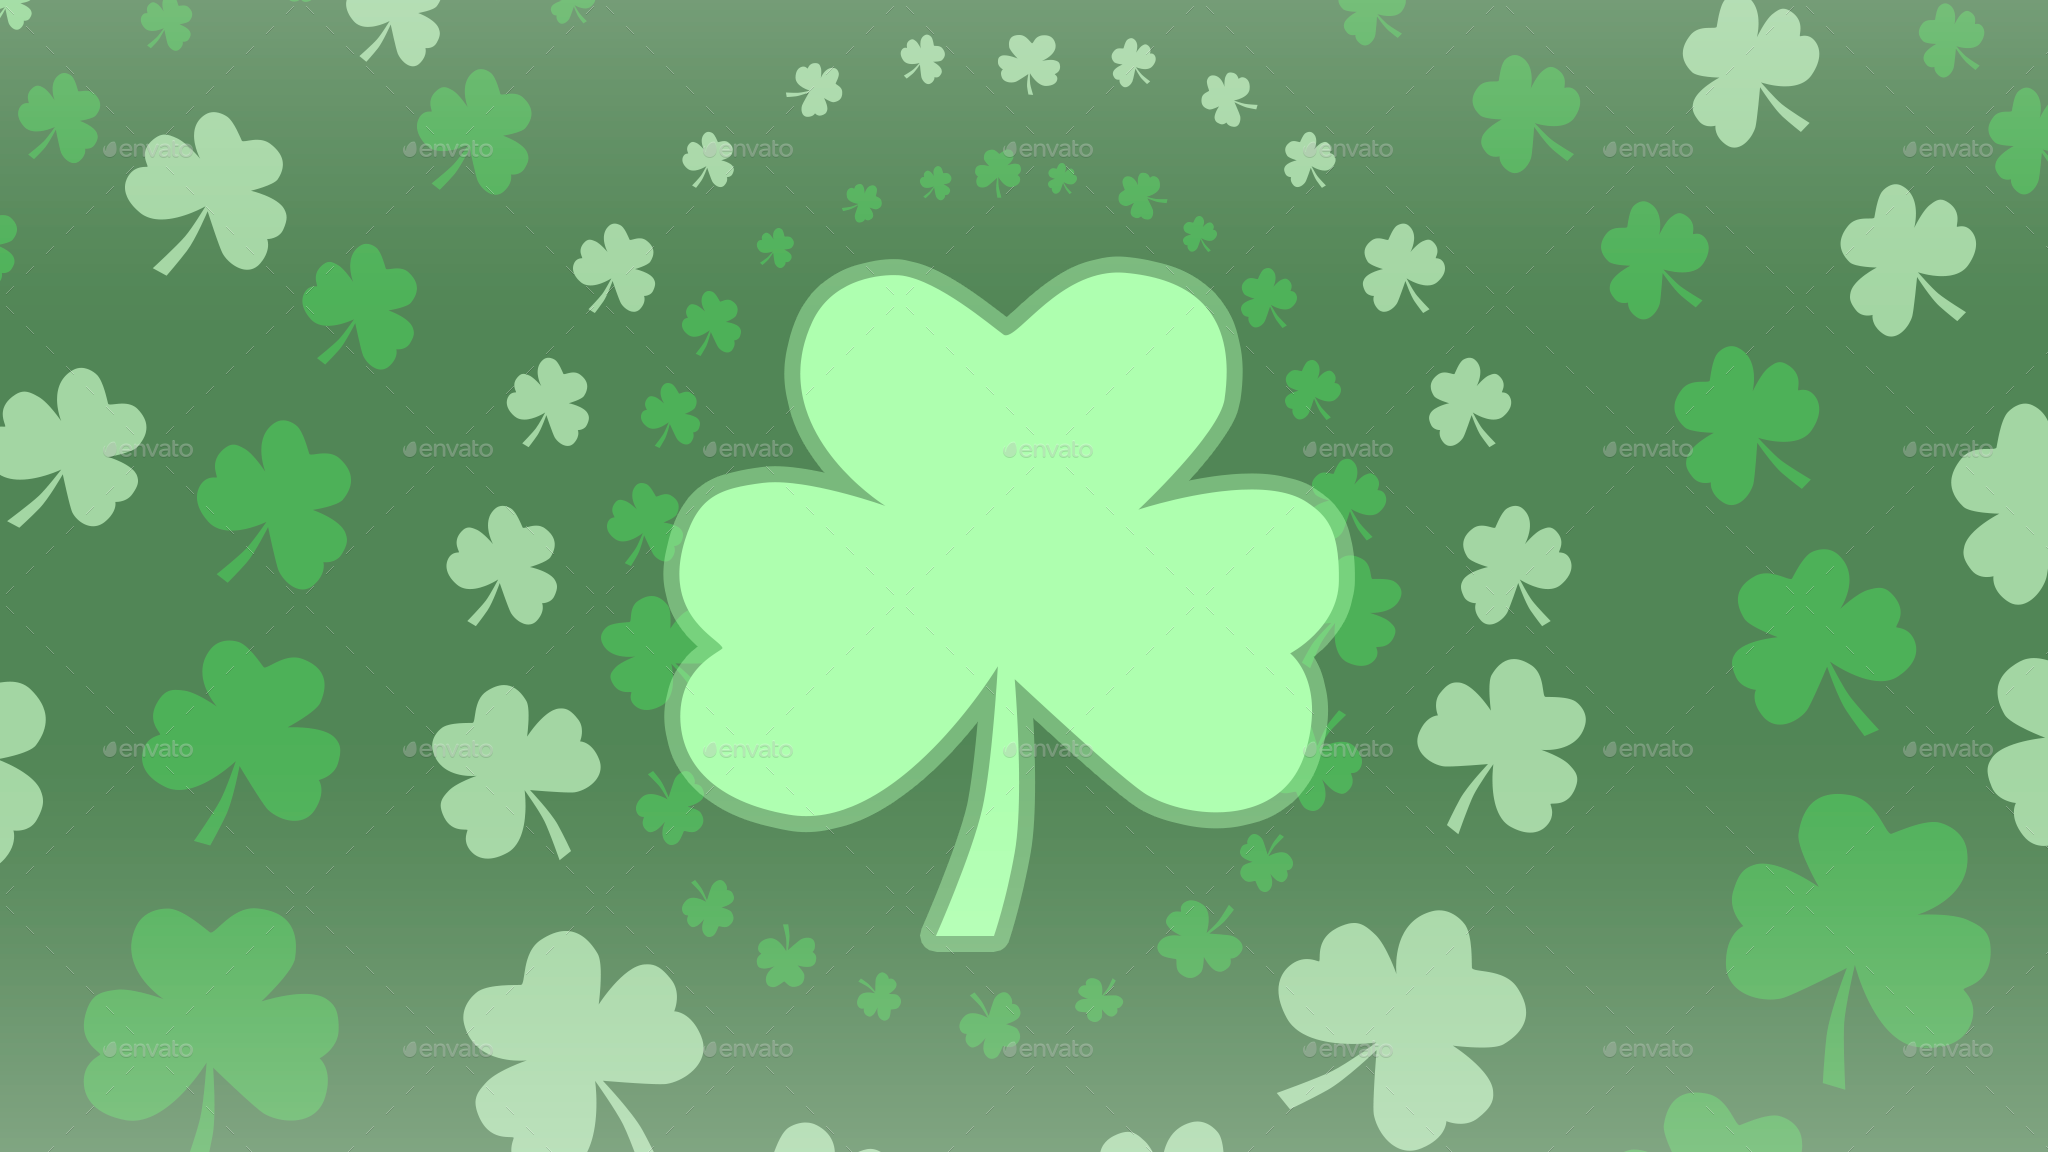 st patricks day backgrounds by creative mobile studio graphicriver